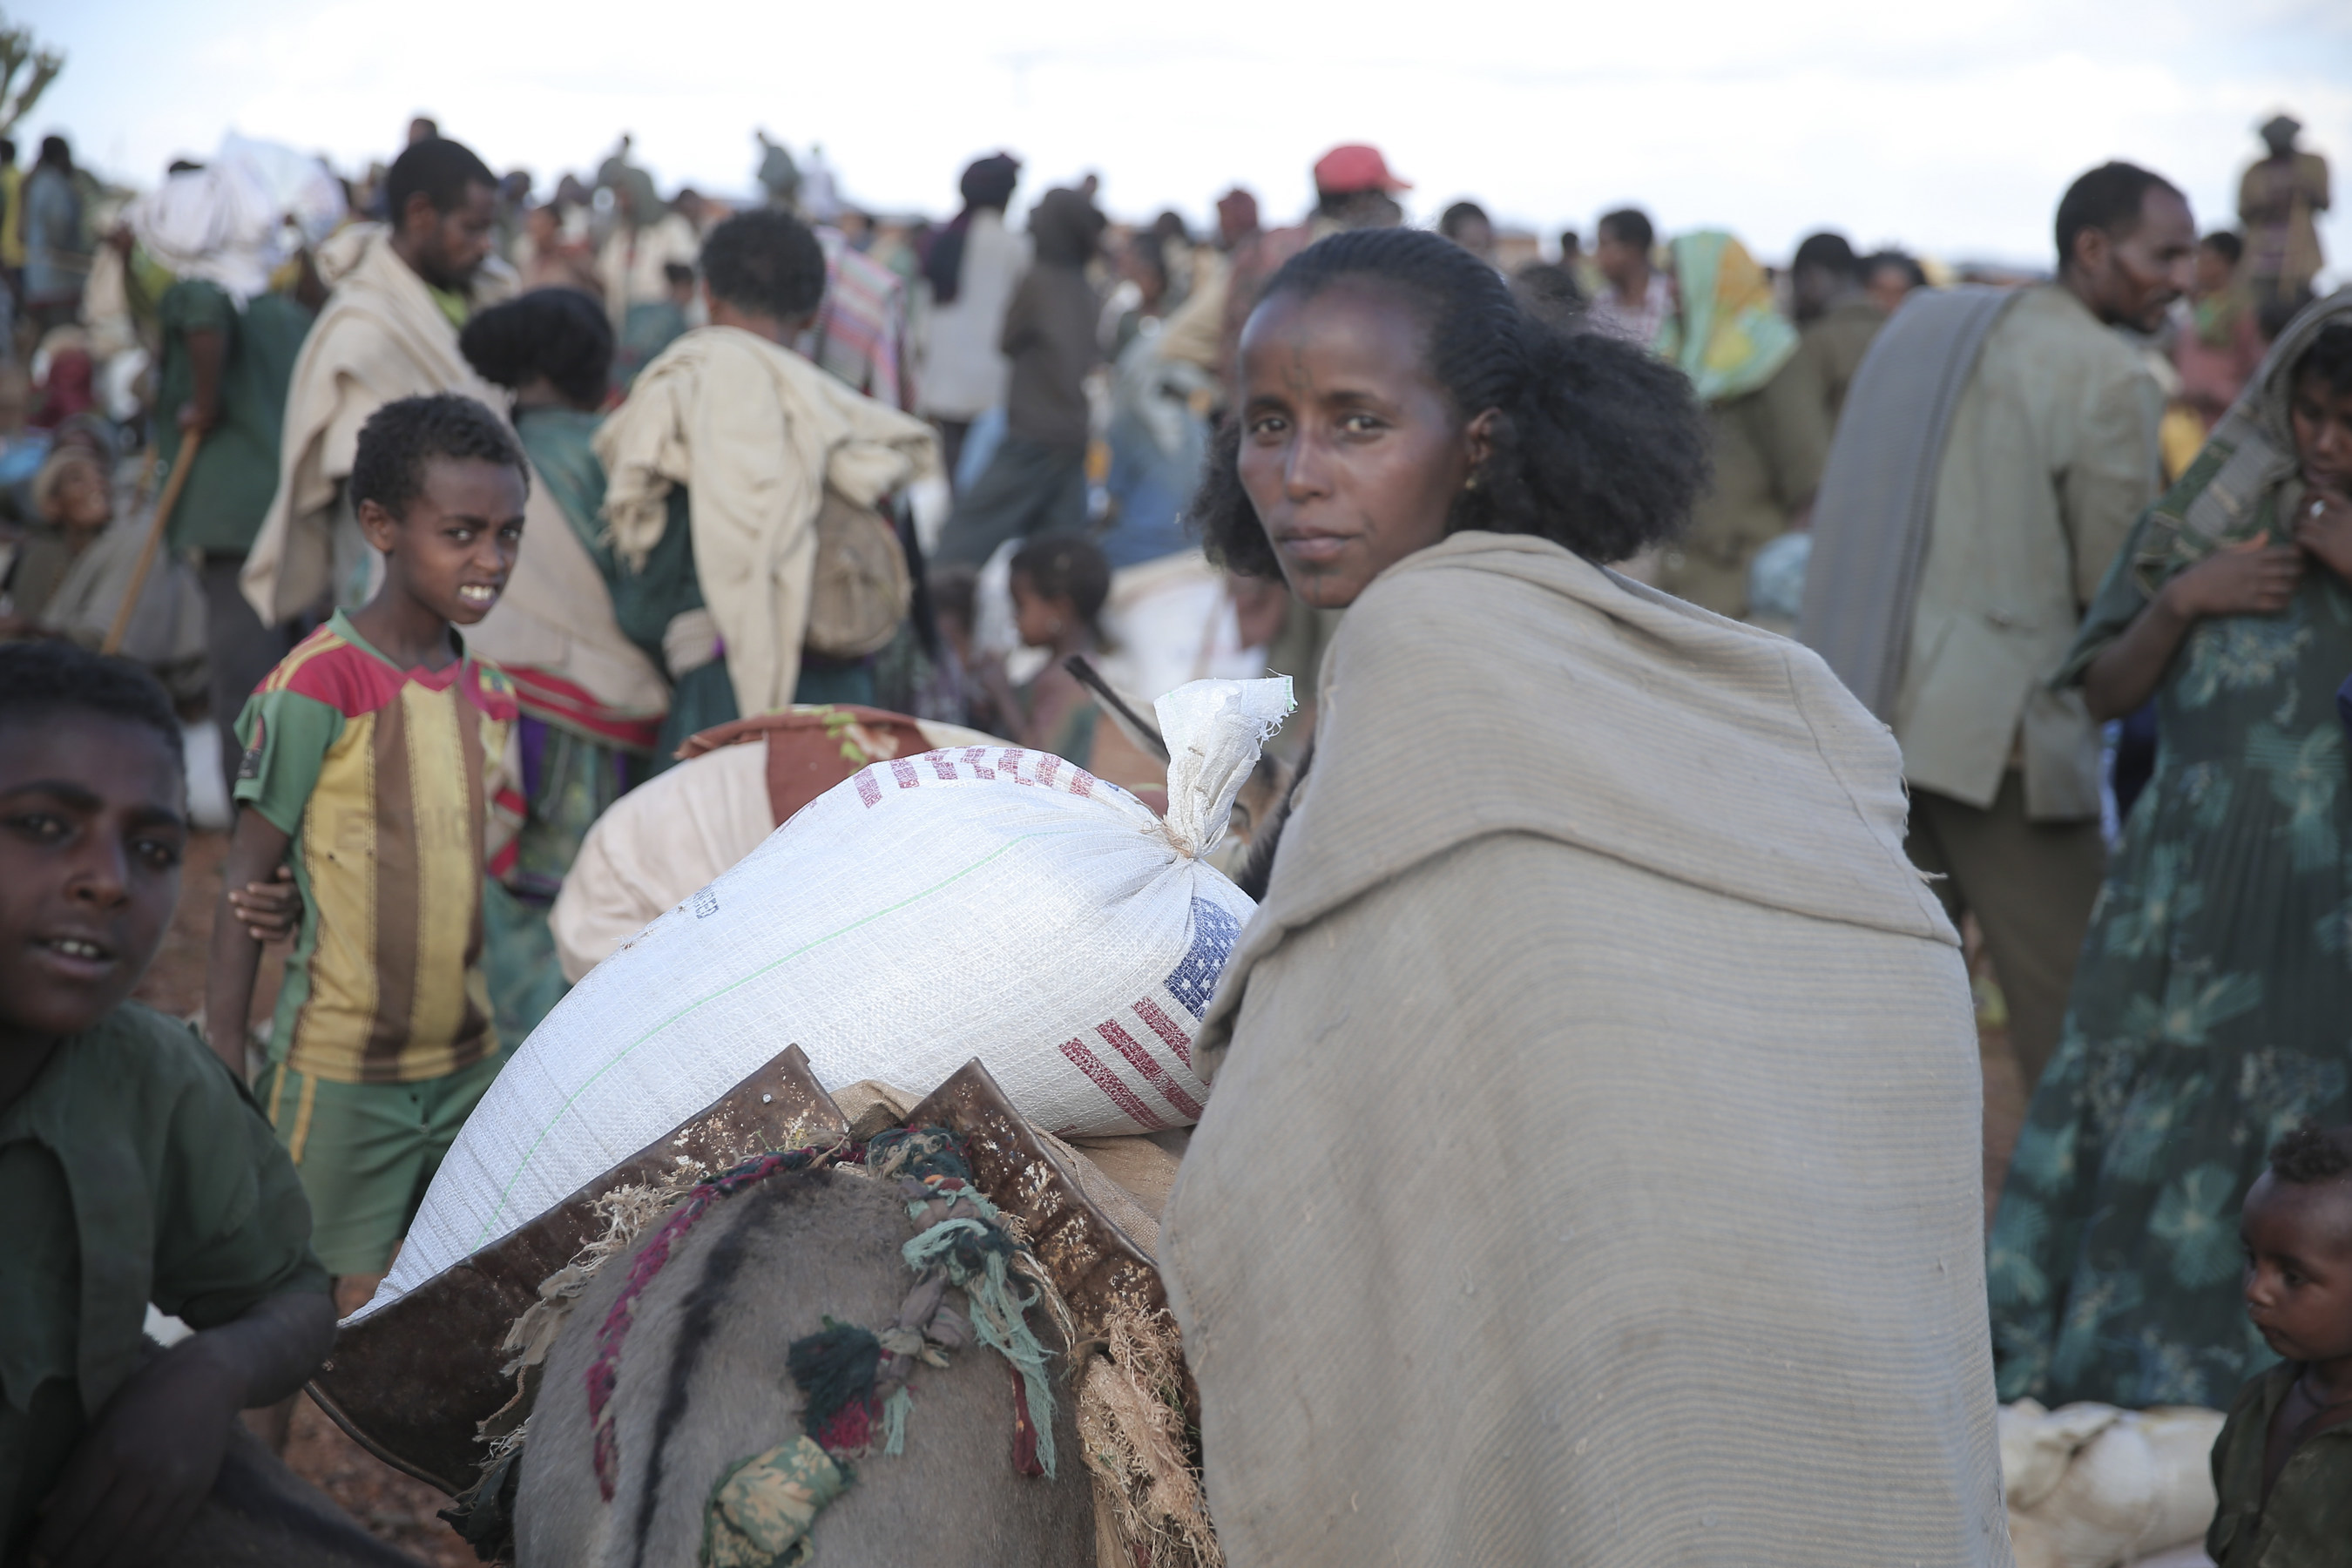 An emergency food aid distribution in the Amhara Region of Ethiopia. Save the Children, in partnership with the Organization for Rehabilitation and Development in Amhara (ORDA), is leading the distribution of the food aid for this site.